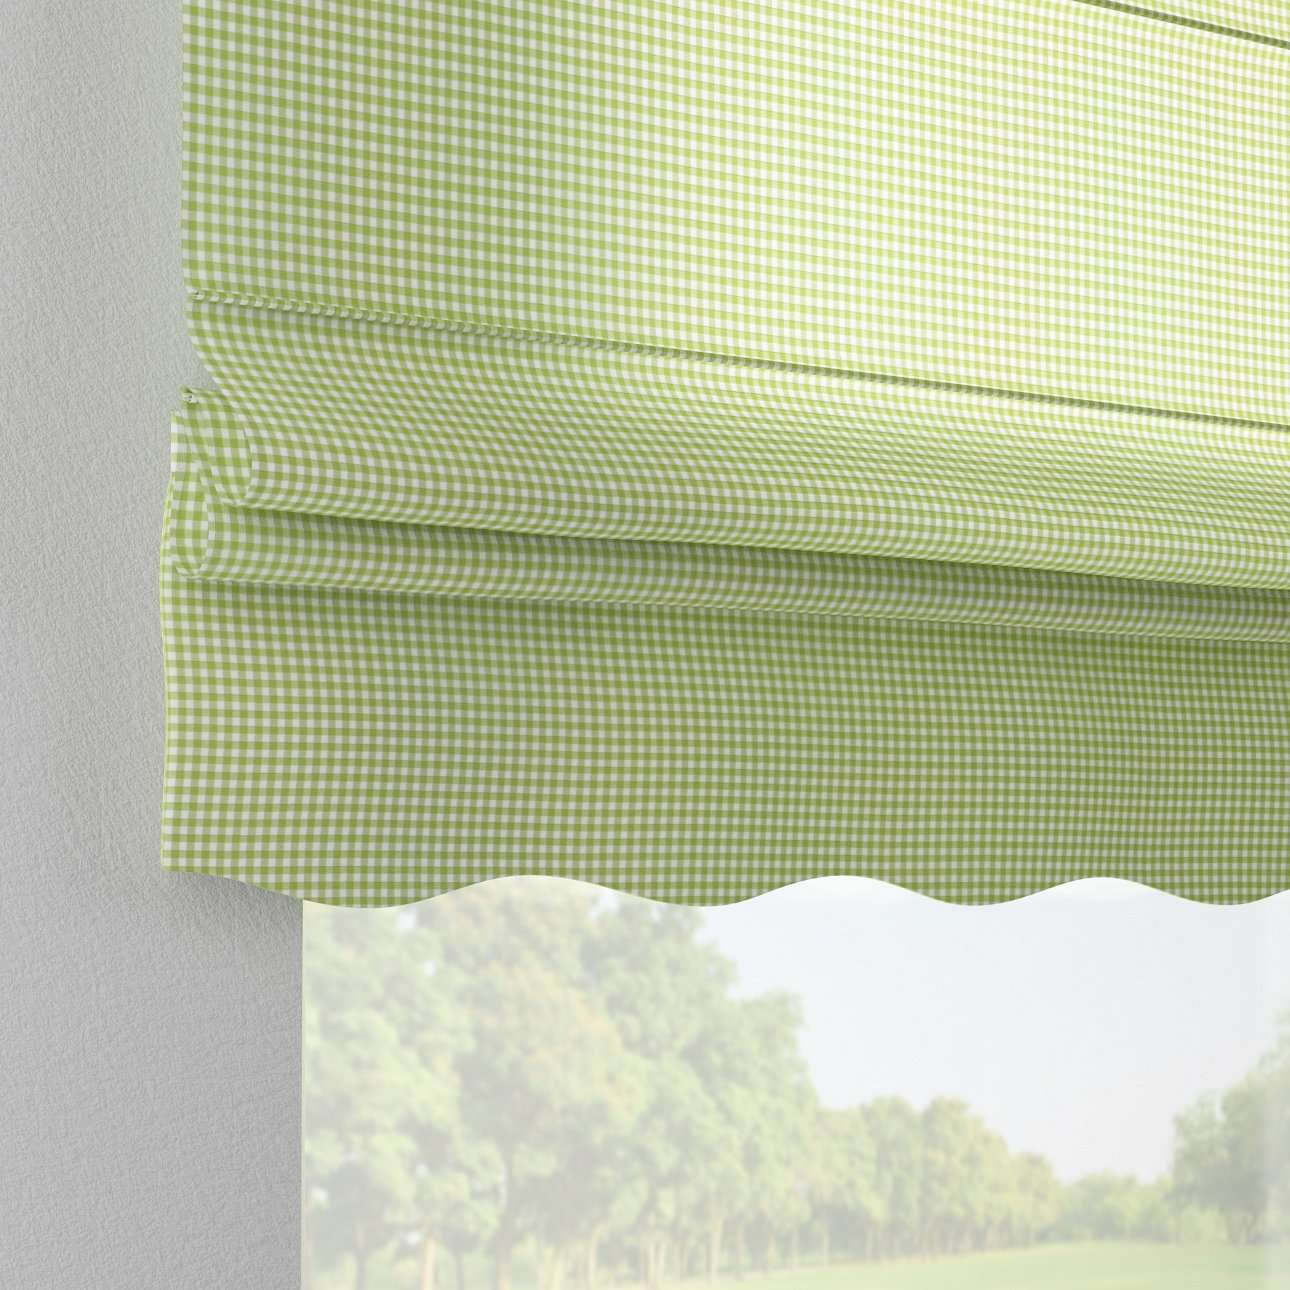 Florence roman blind  80 x 170 cm (31.5 x 67 inch) in collection Quadro, fabric: 136-33